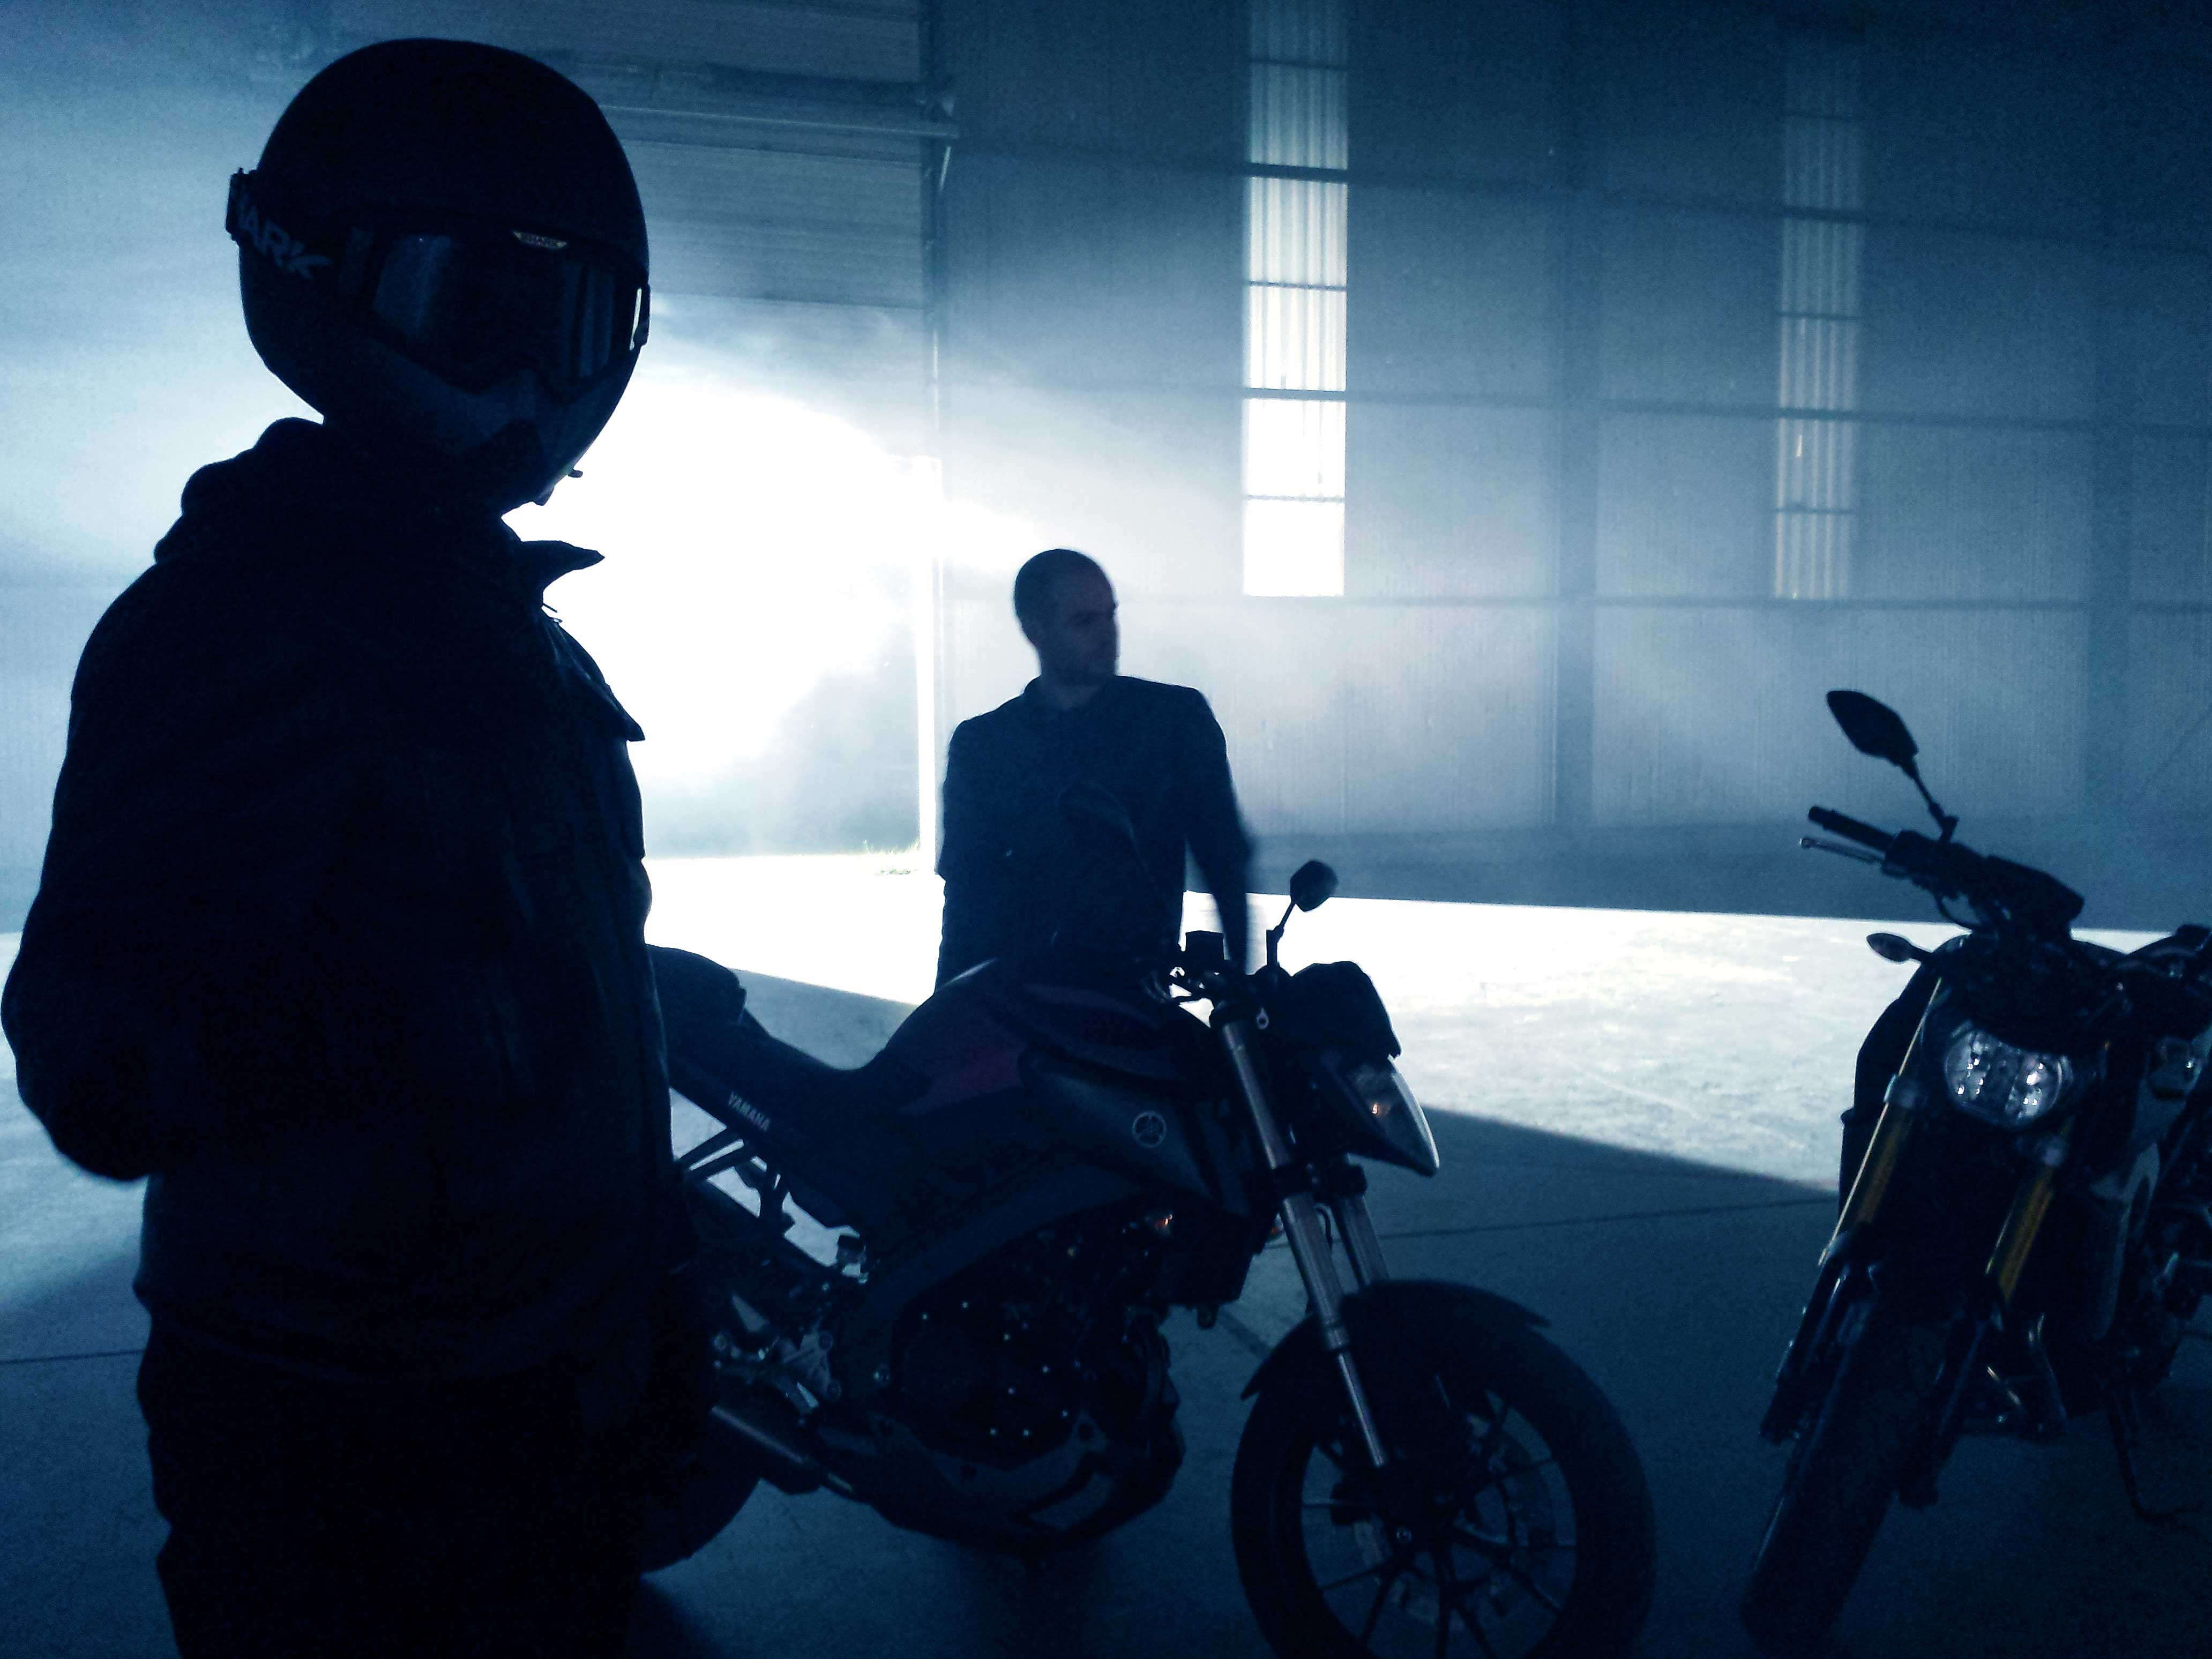 YAMAHA MT 125 UP TO YOU STUDIO AUTOMOTIVE & TECHNOLOGY COMMERCIAL & ADVERTISEMENT SET DESIGN EPHEMERAL DESIGN COSTUME DESIGN